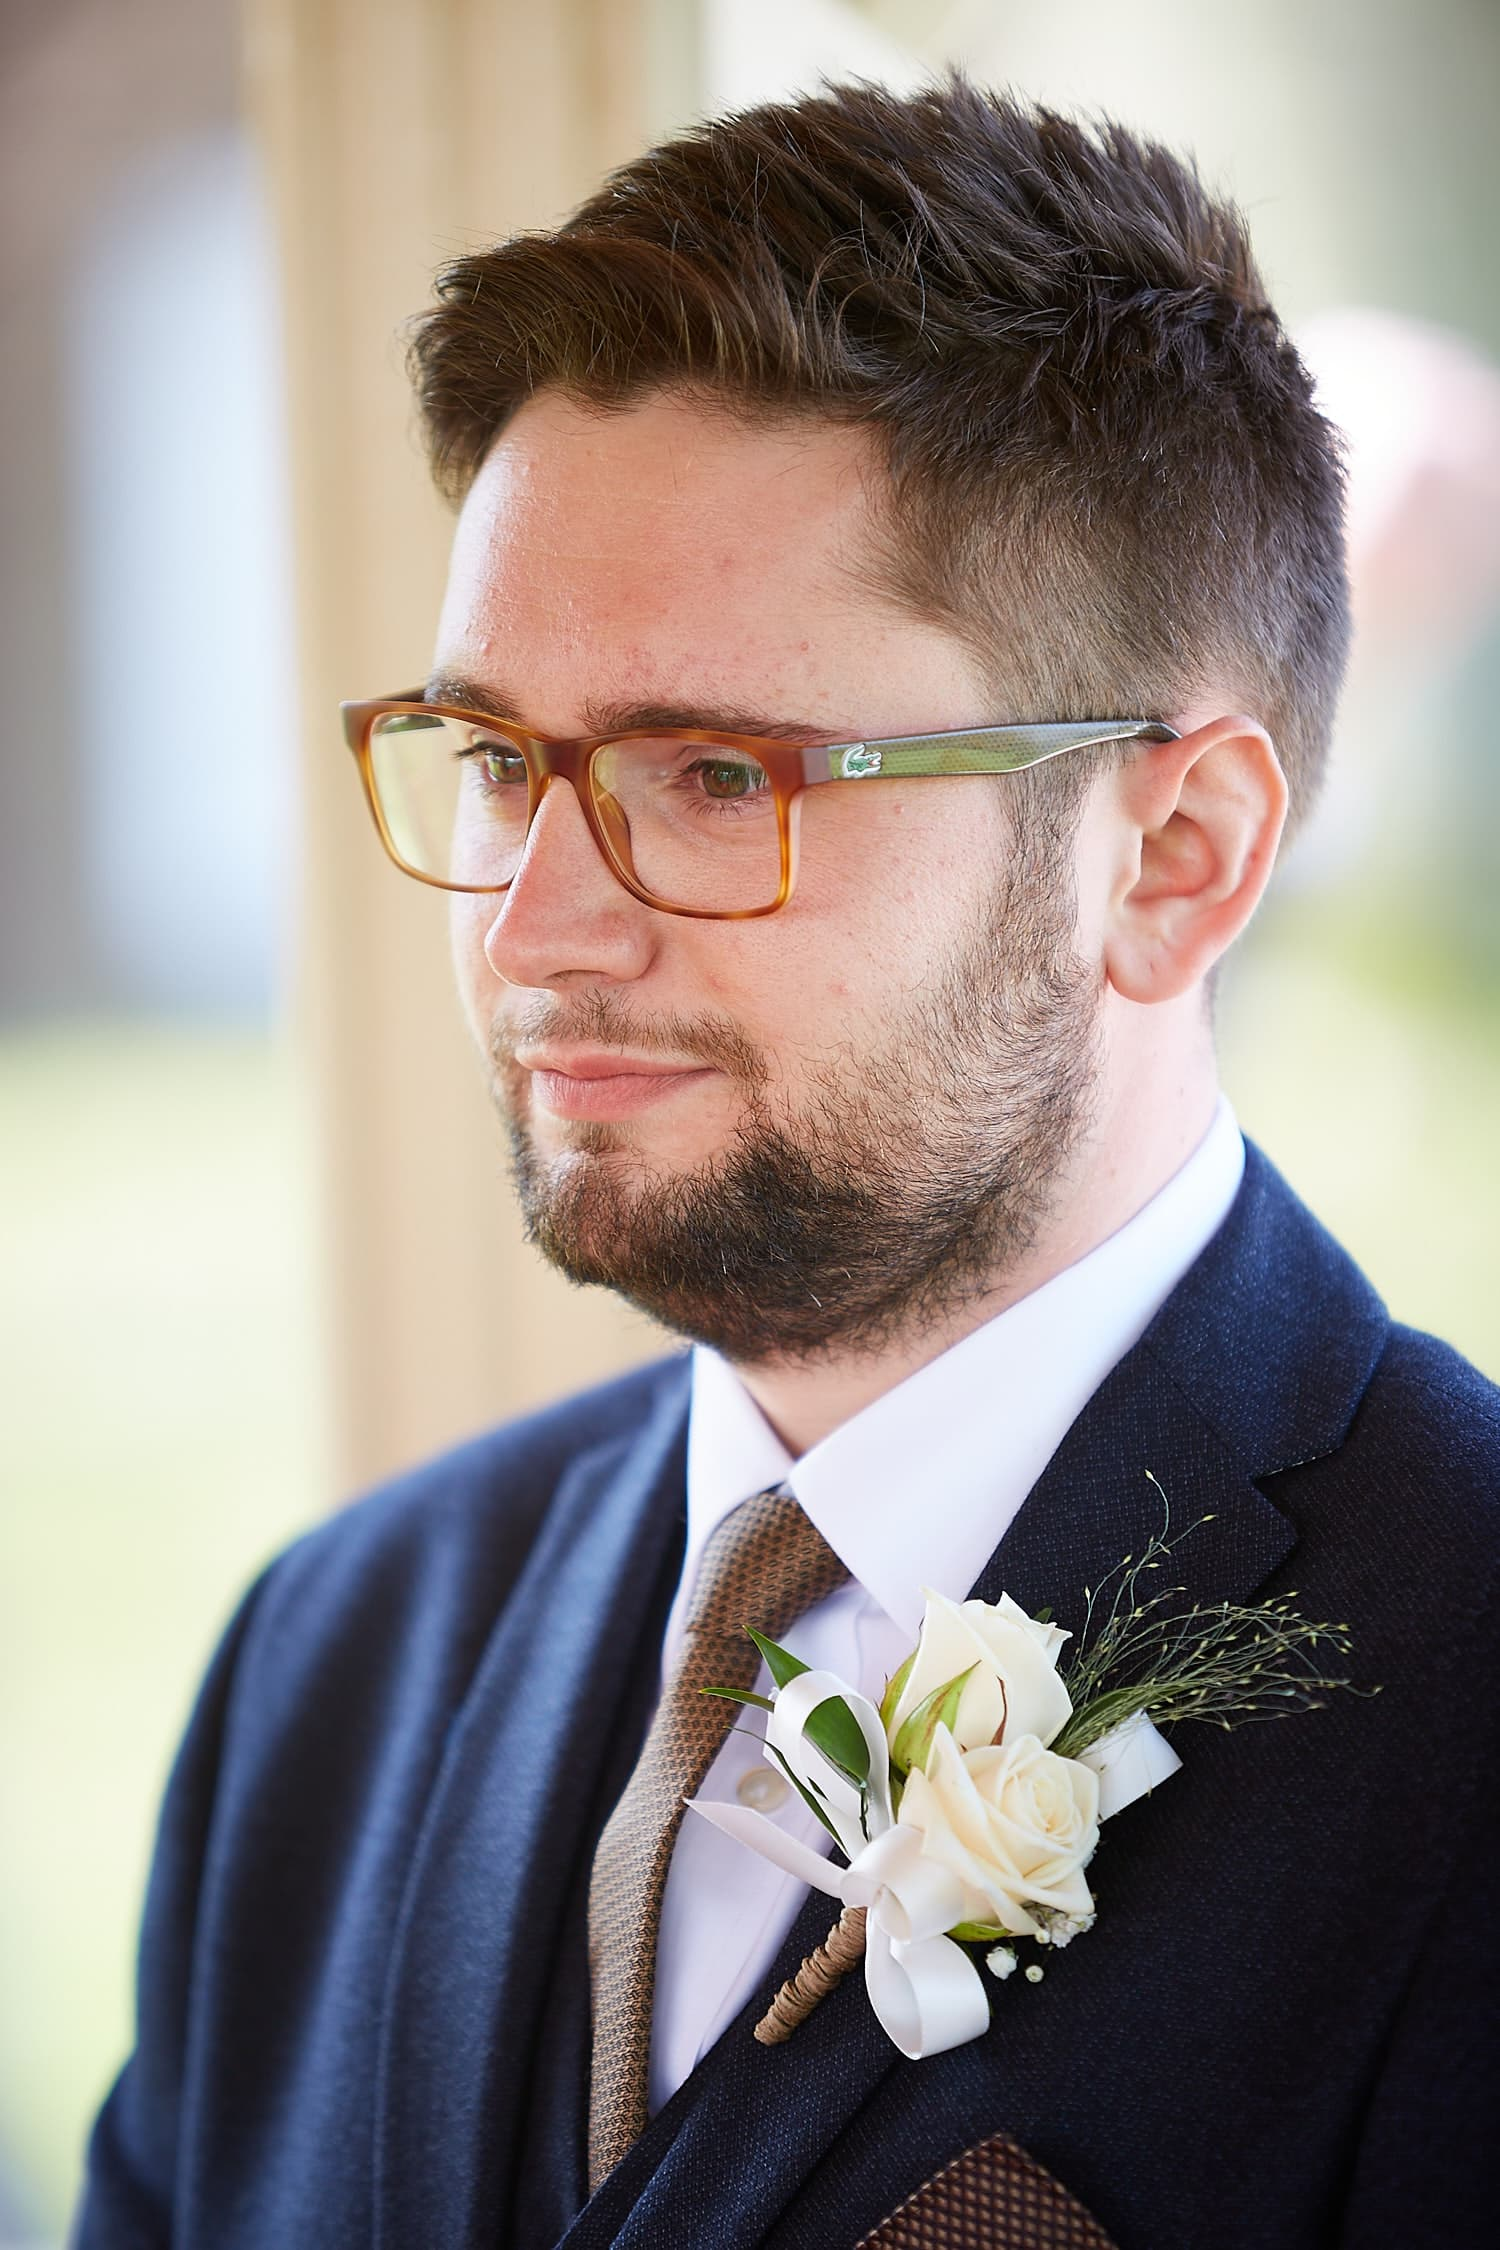 A nervous groom waiting for his bride to walk down the aisle